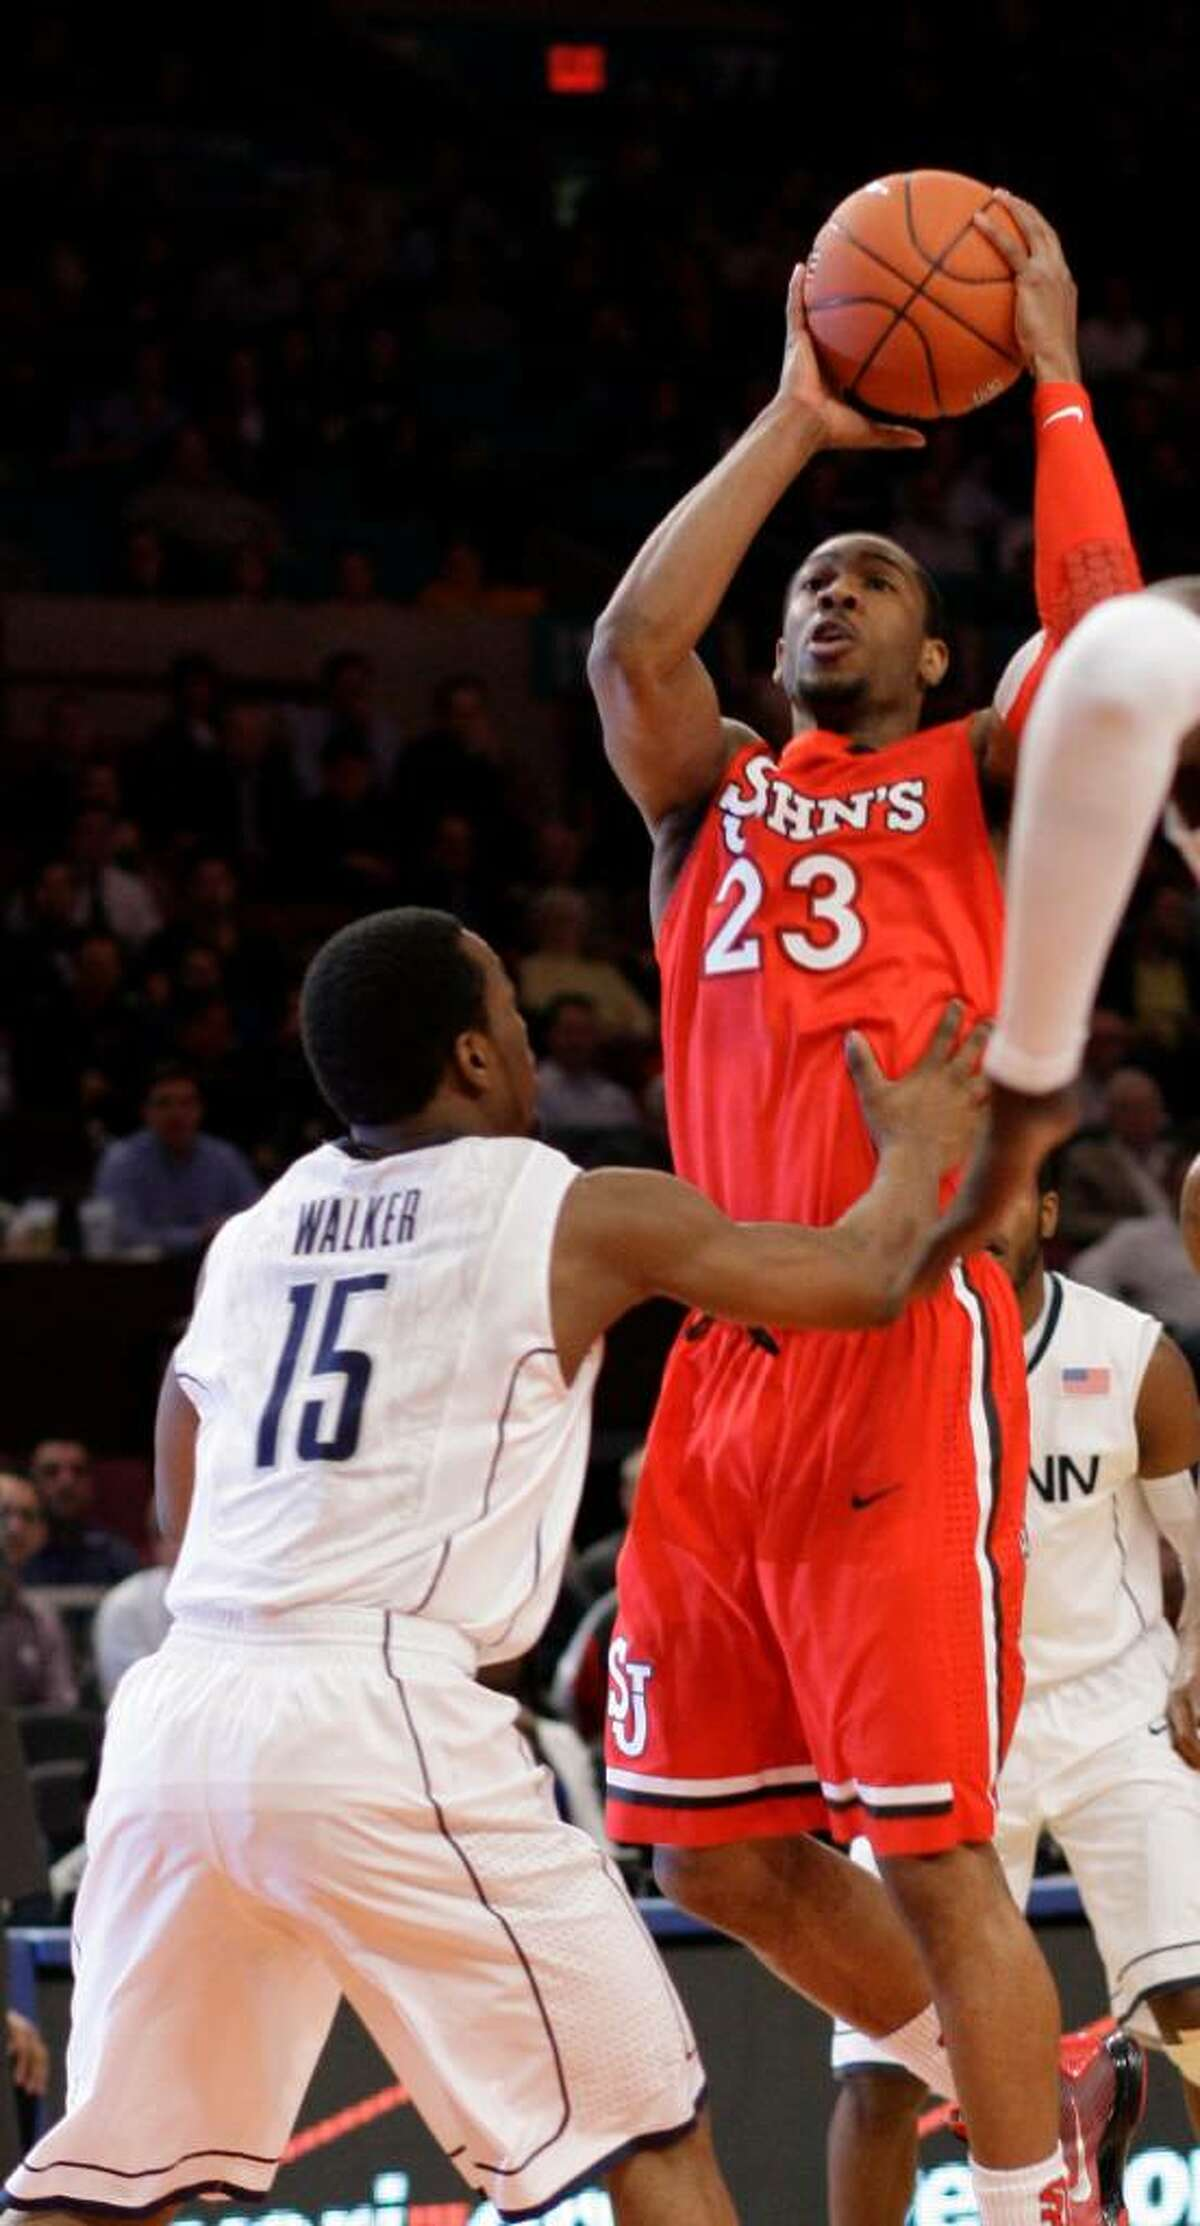 St. John's Paris Horne (23) shoots over Connecticut's Kemba Walker (15) during the first half of a first round NCAA college basketball game at the Big East Conference Championships on Tuesday, March 9, 2010 in New York. (AP Photo/Frank Franklin II)